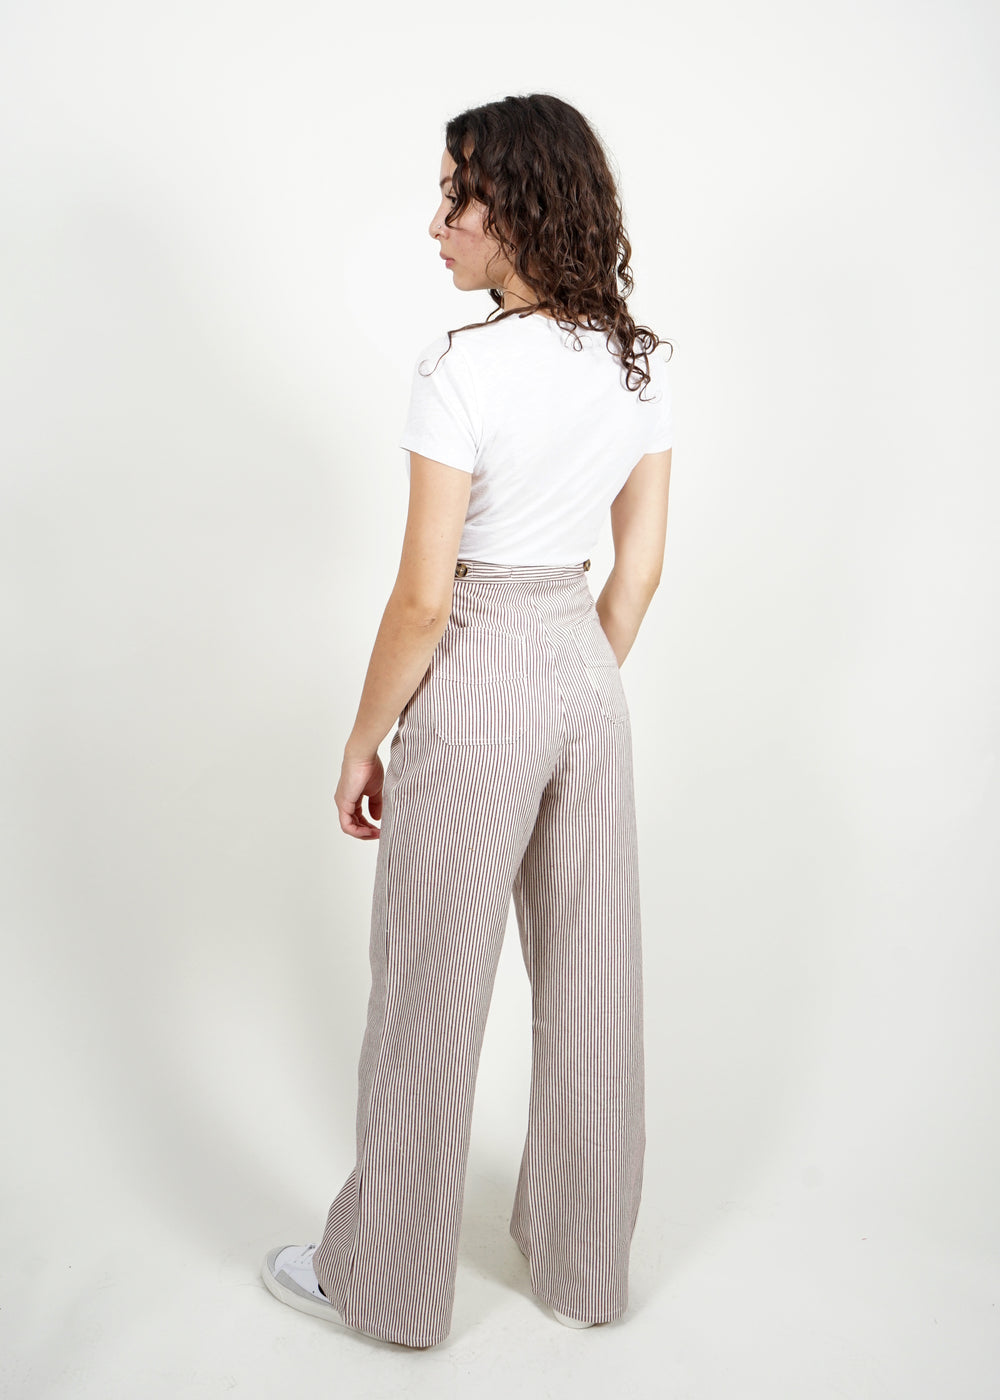 Spencer Pant - Mocha Pin Stripe